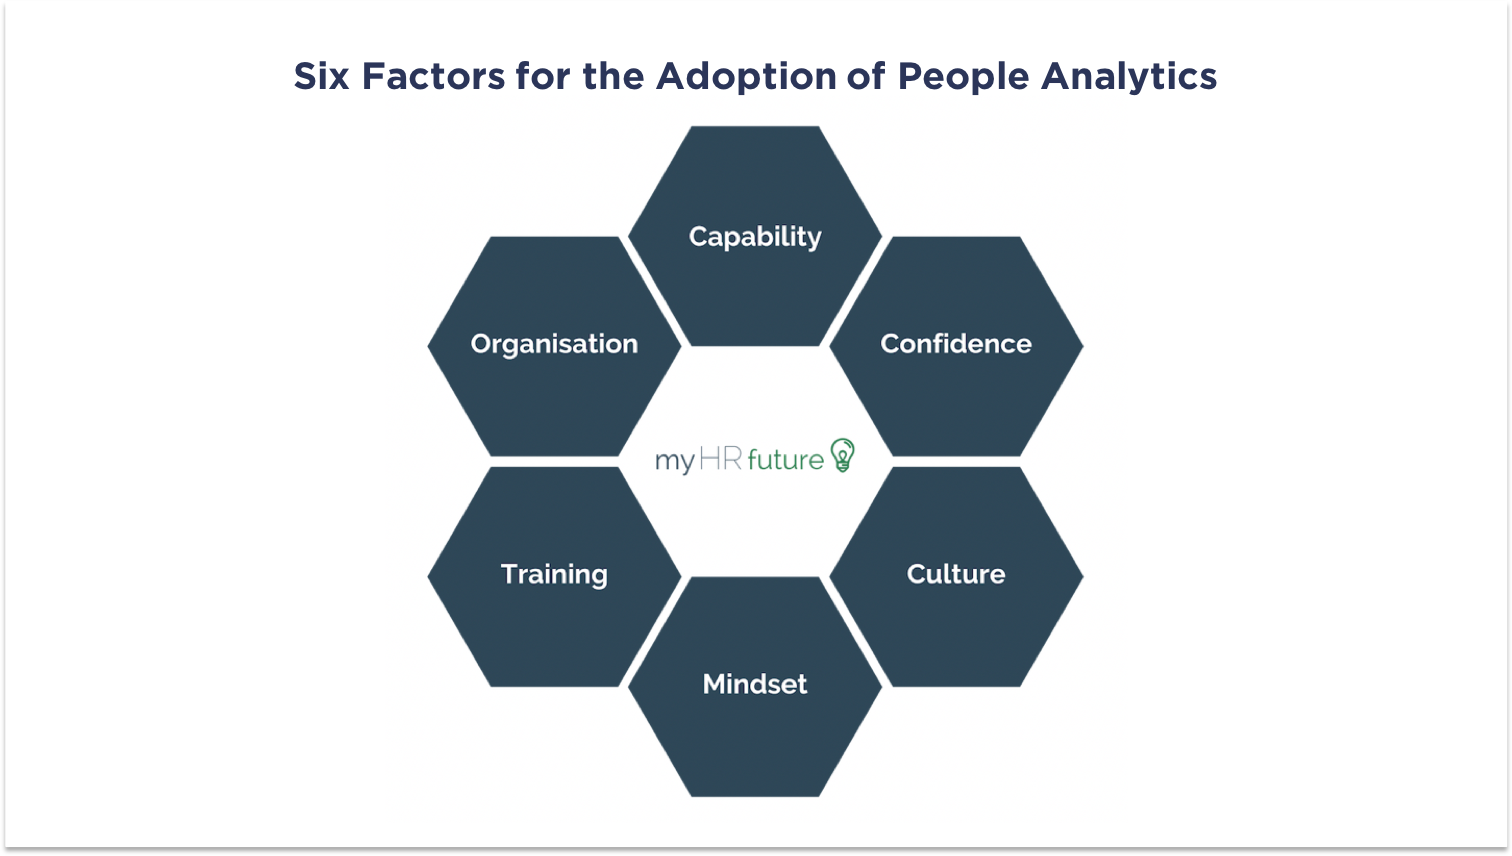 FIG 1:    Six Factors for the Adoption of People Analytics (Source: myHRfuture)